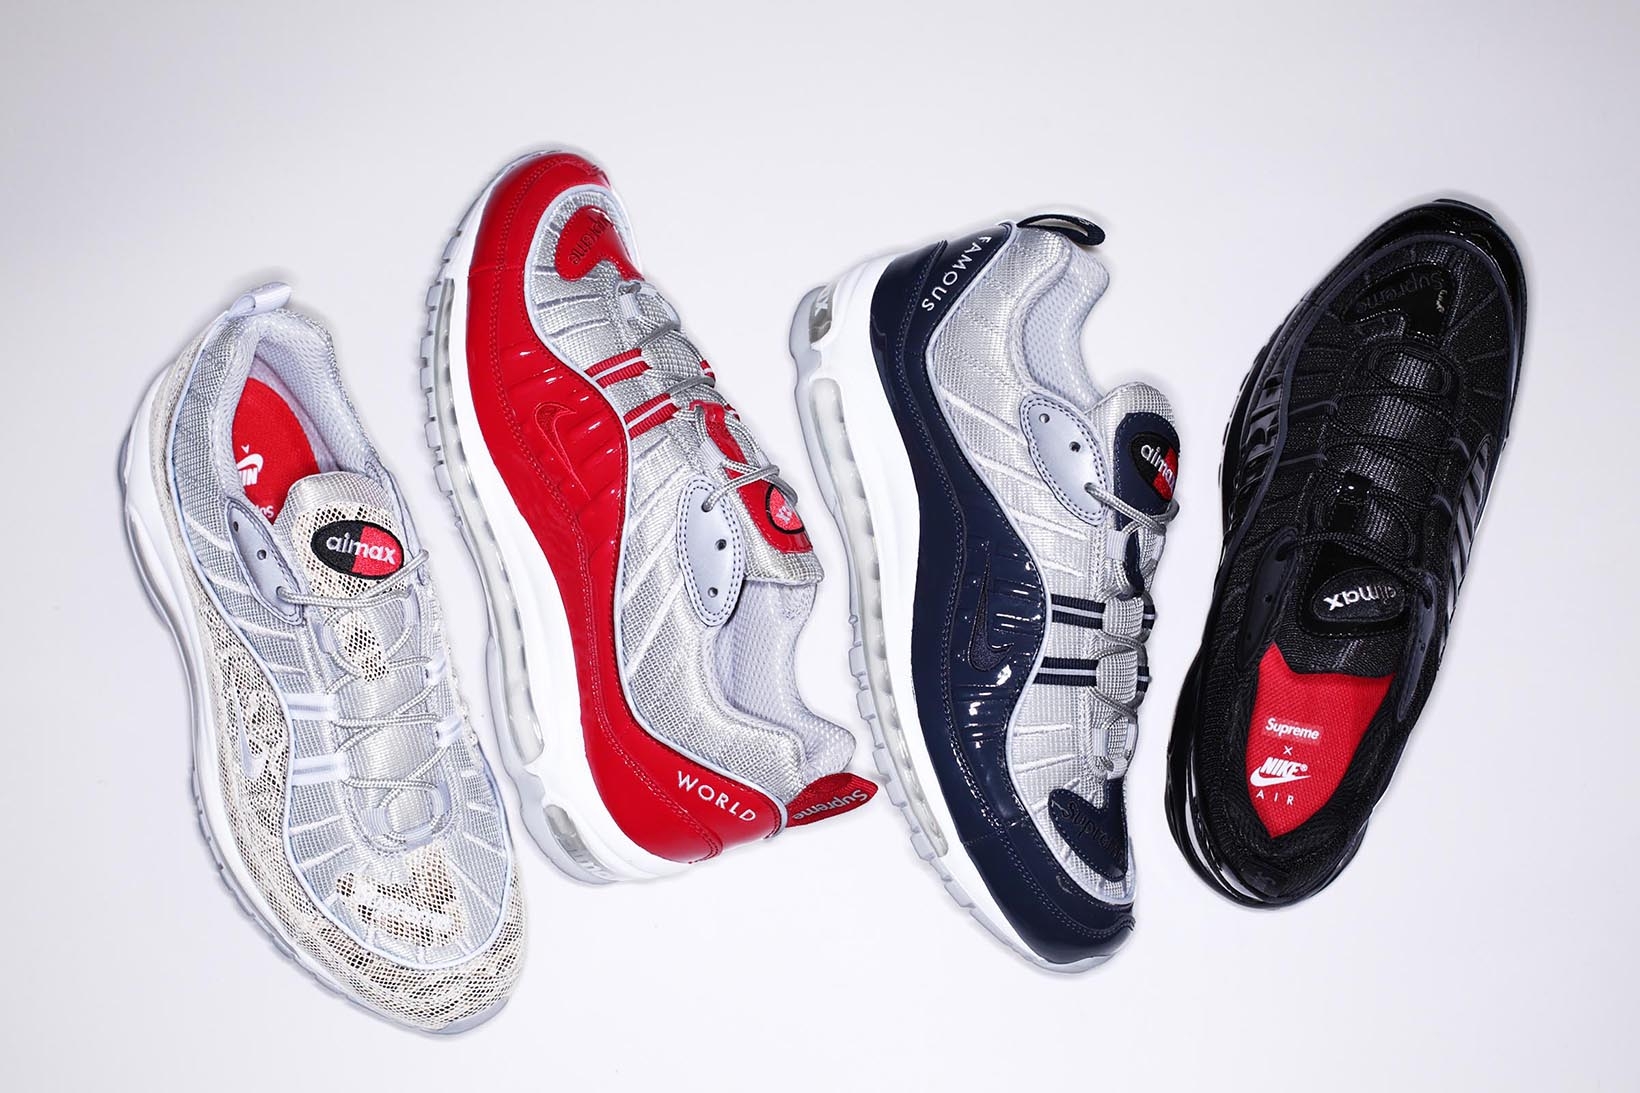 37f410ad163 ... where can i buy release update supreme x nike air max 98 spring 2016  collection 2